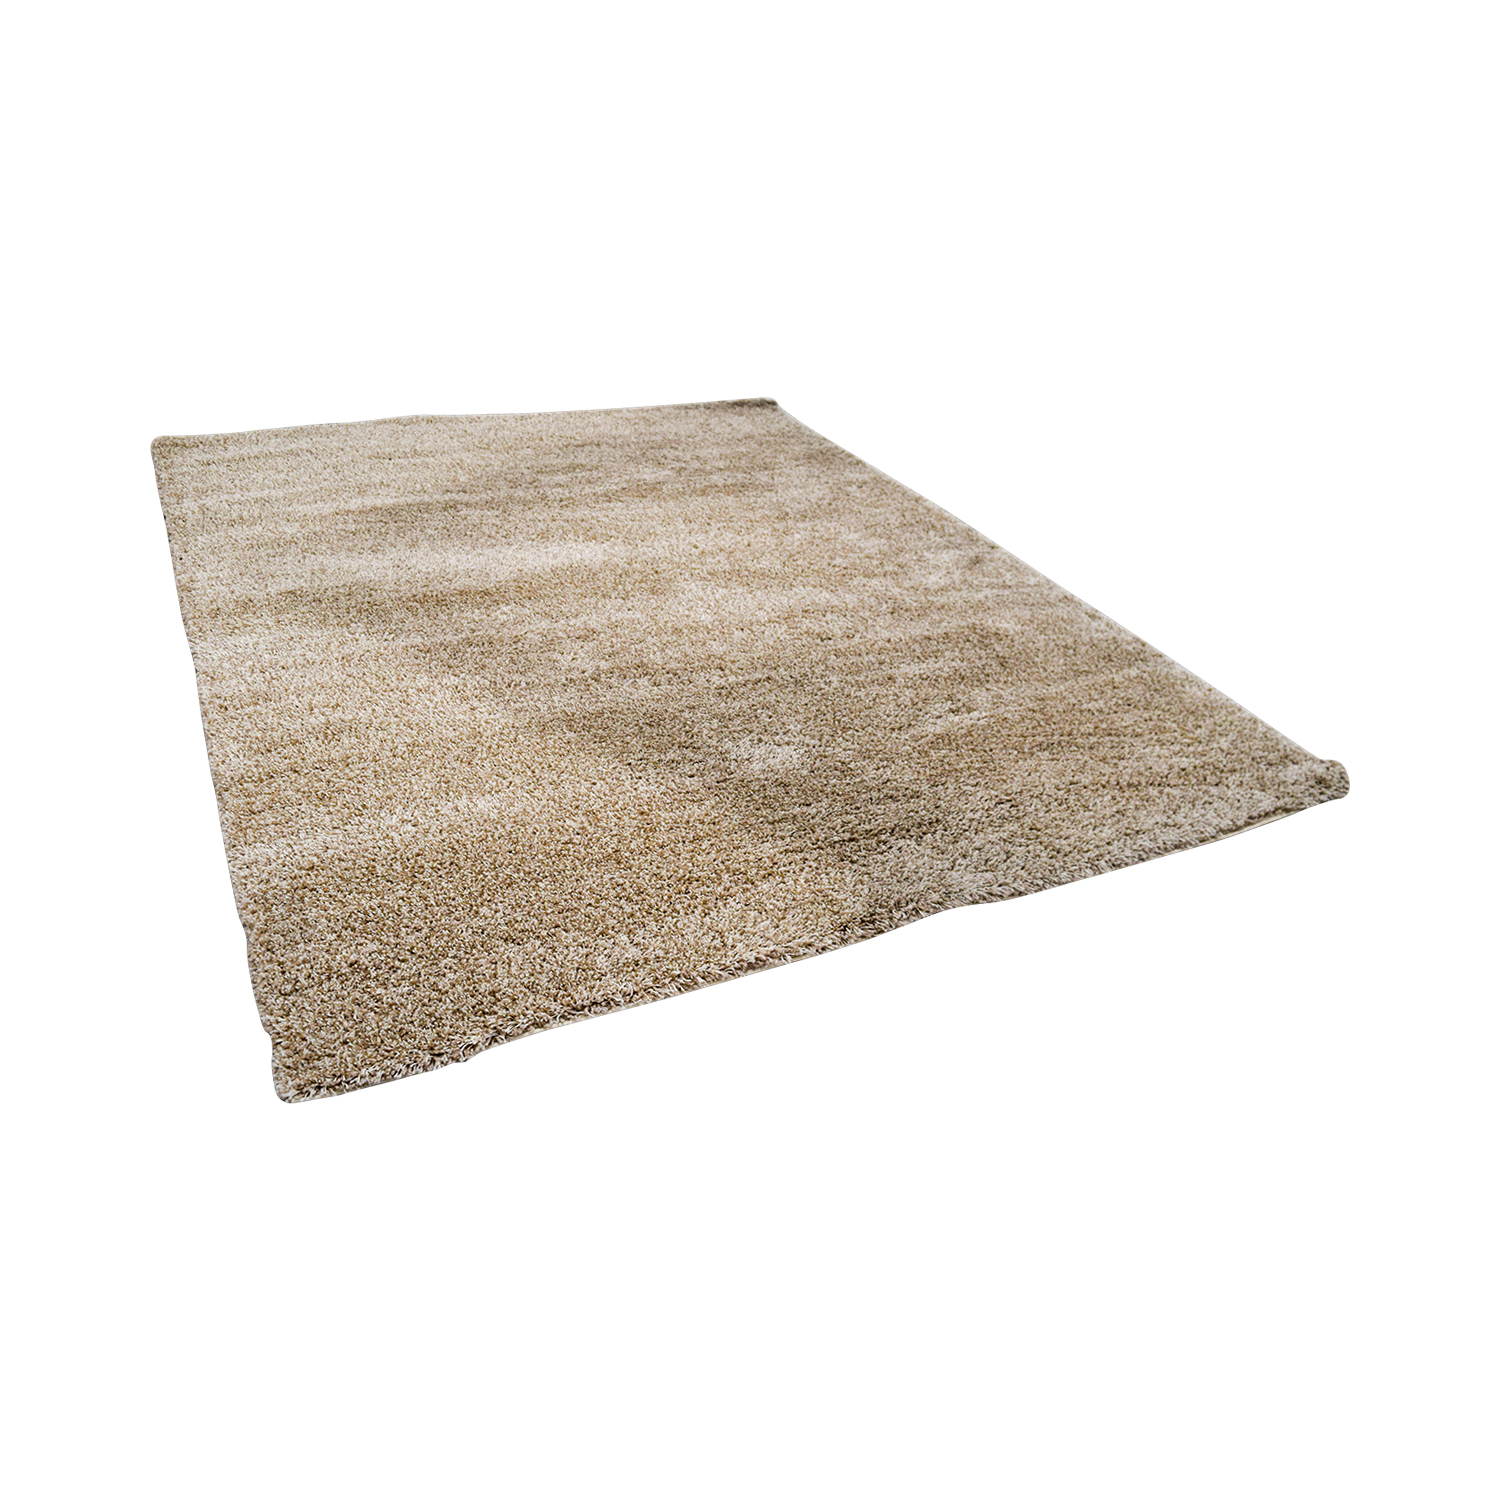 Savavieh Savavieh Braided Beige Rectangle Rug Rugs